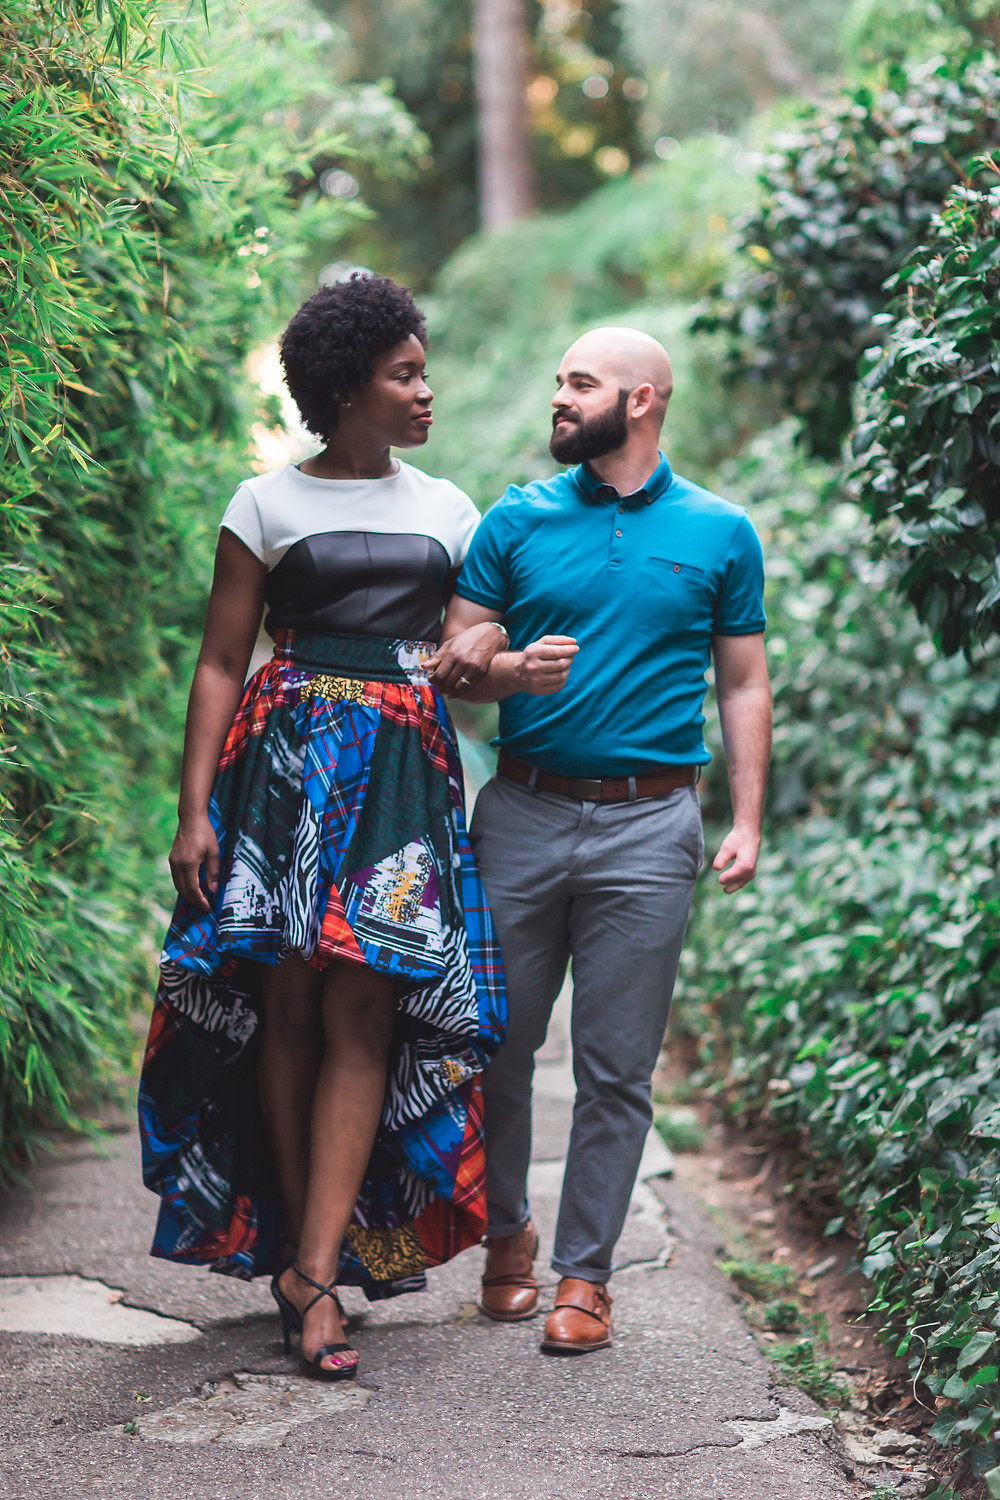 North Beach / Coit Tower Engagement Shoot